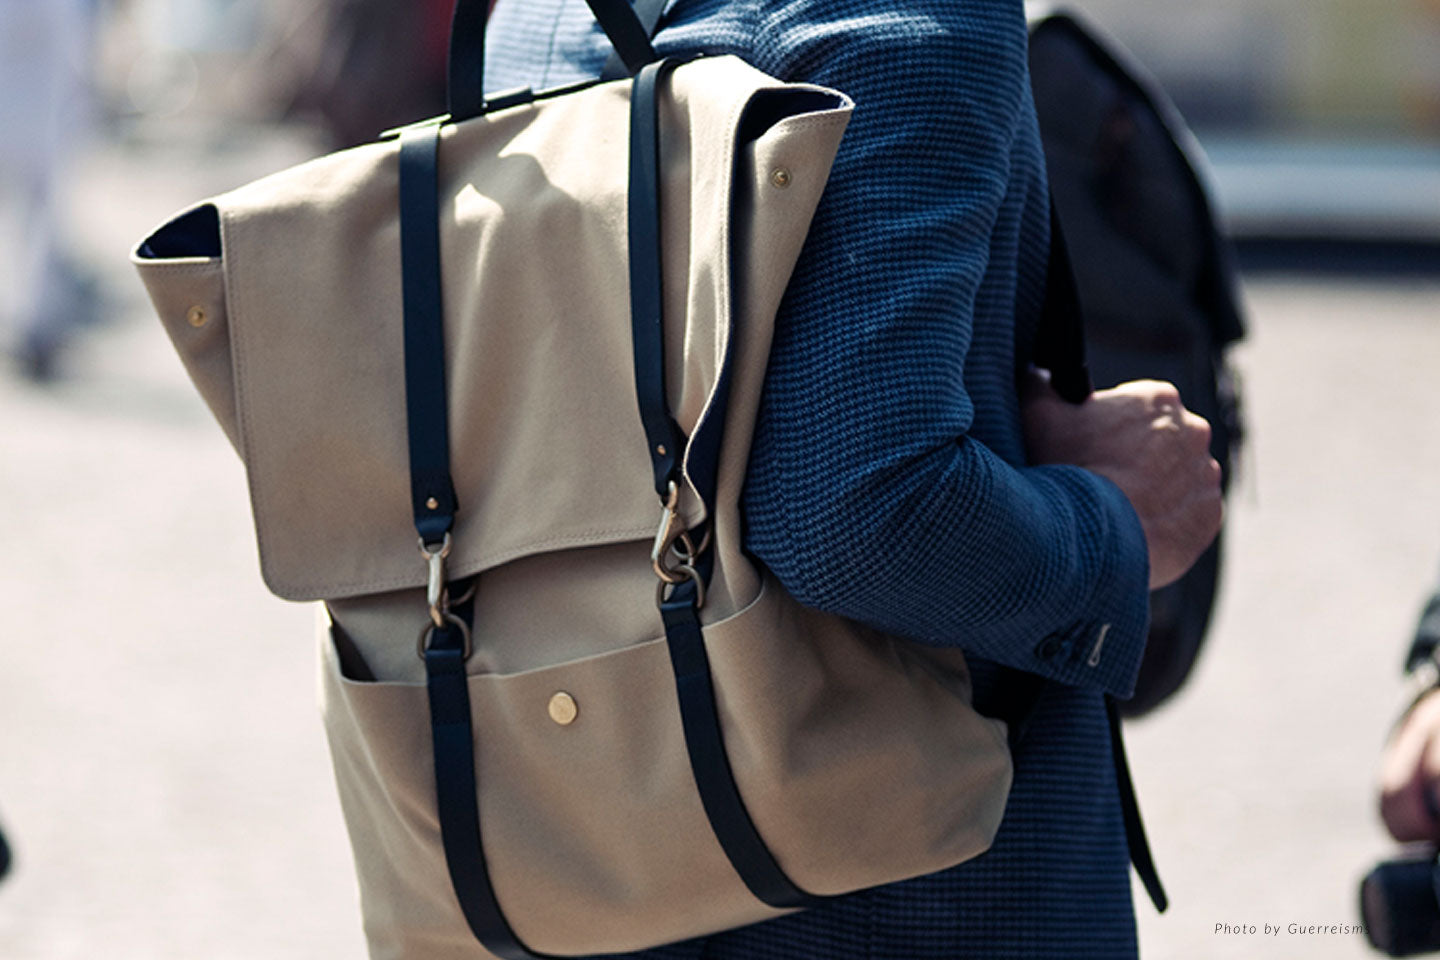 The Gentlemen's Bag Guide